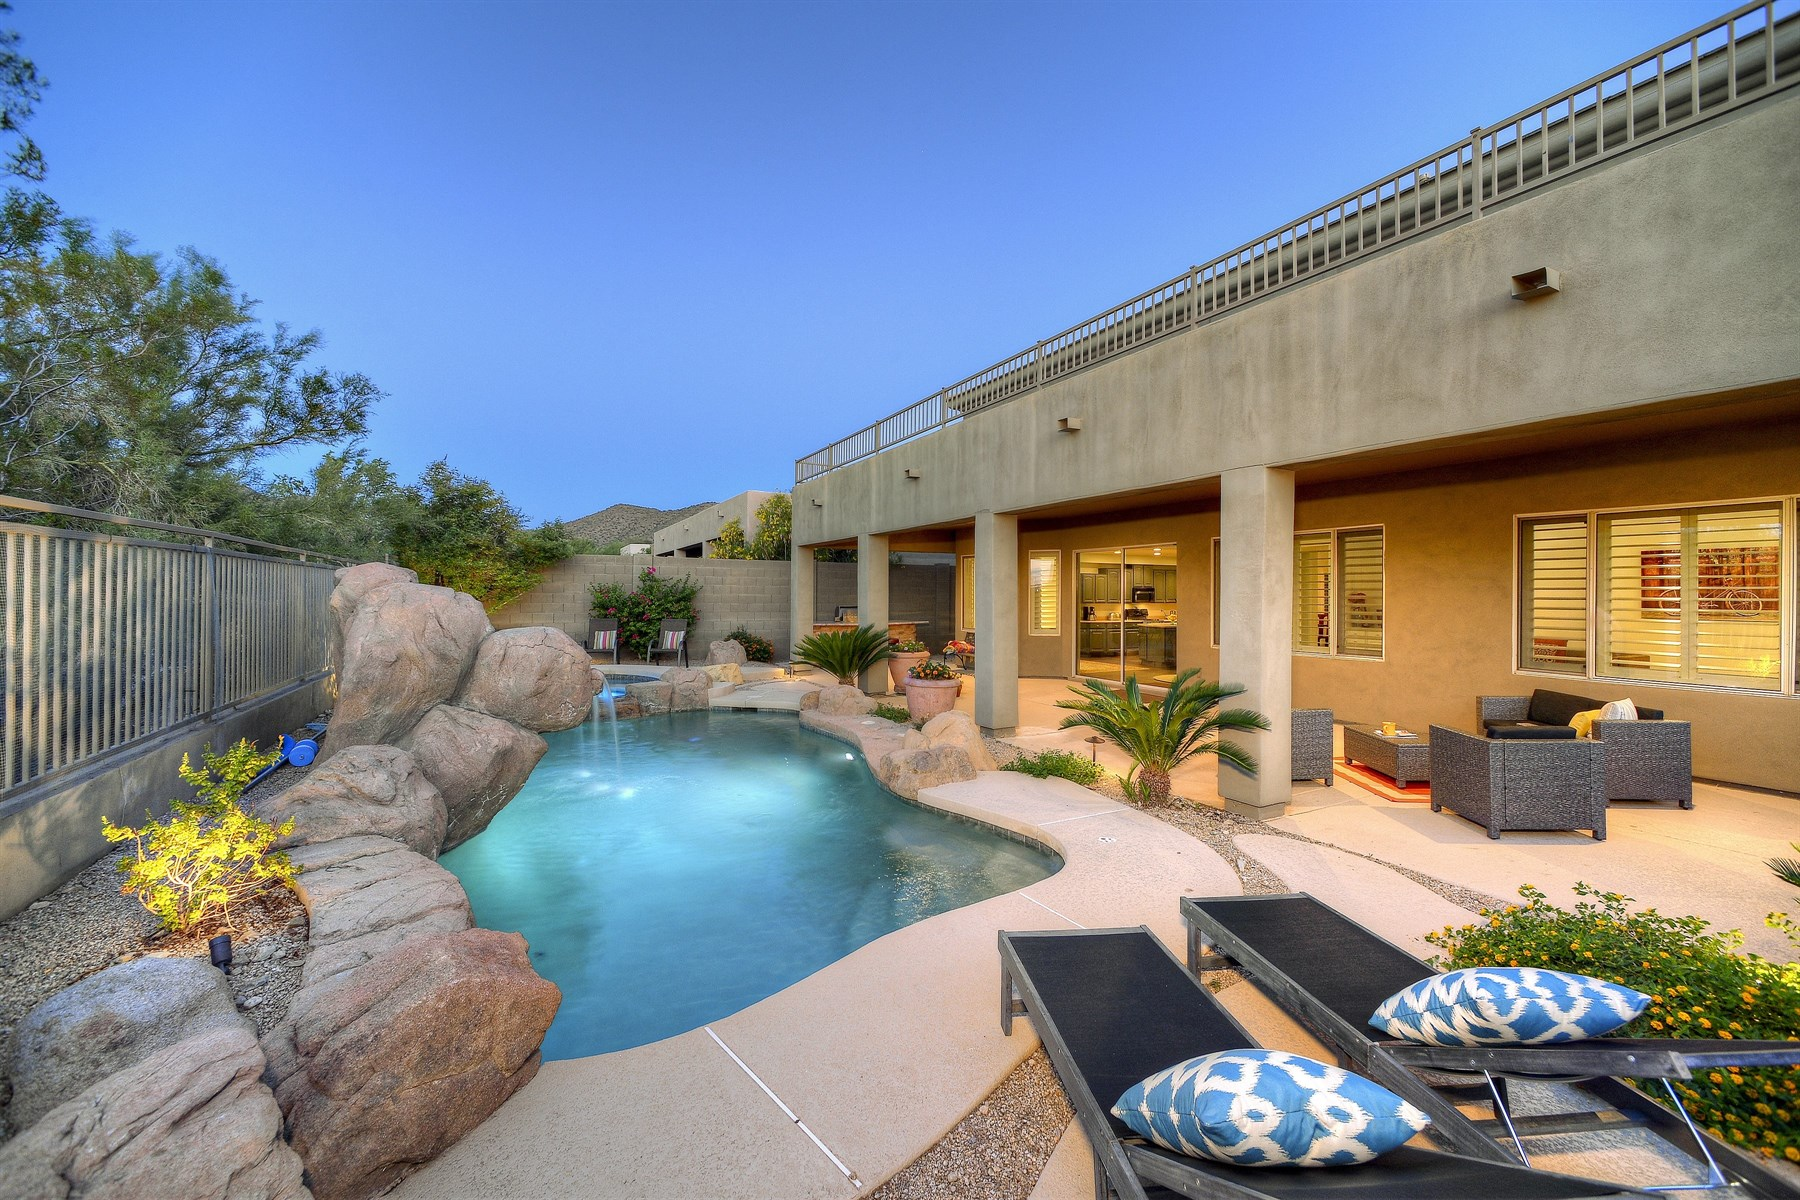 獨棟家庭住宅 為 出售 在 Gated Quiet Neighborhood Overlooks The McDowell Golf Course & McDowell Mountains 10634 E Sheena Drive Scottsdale, 亞利桑那州, 85255 美國